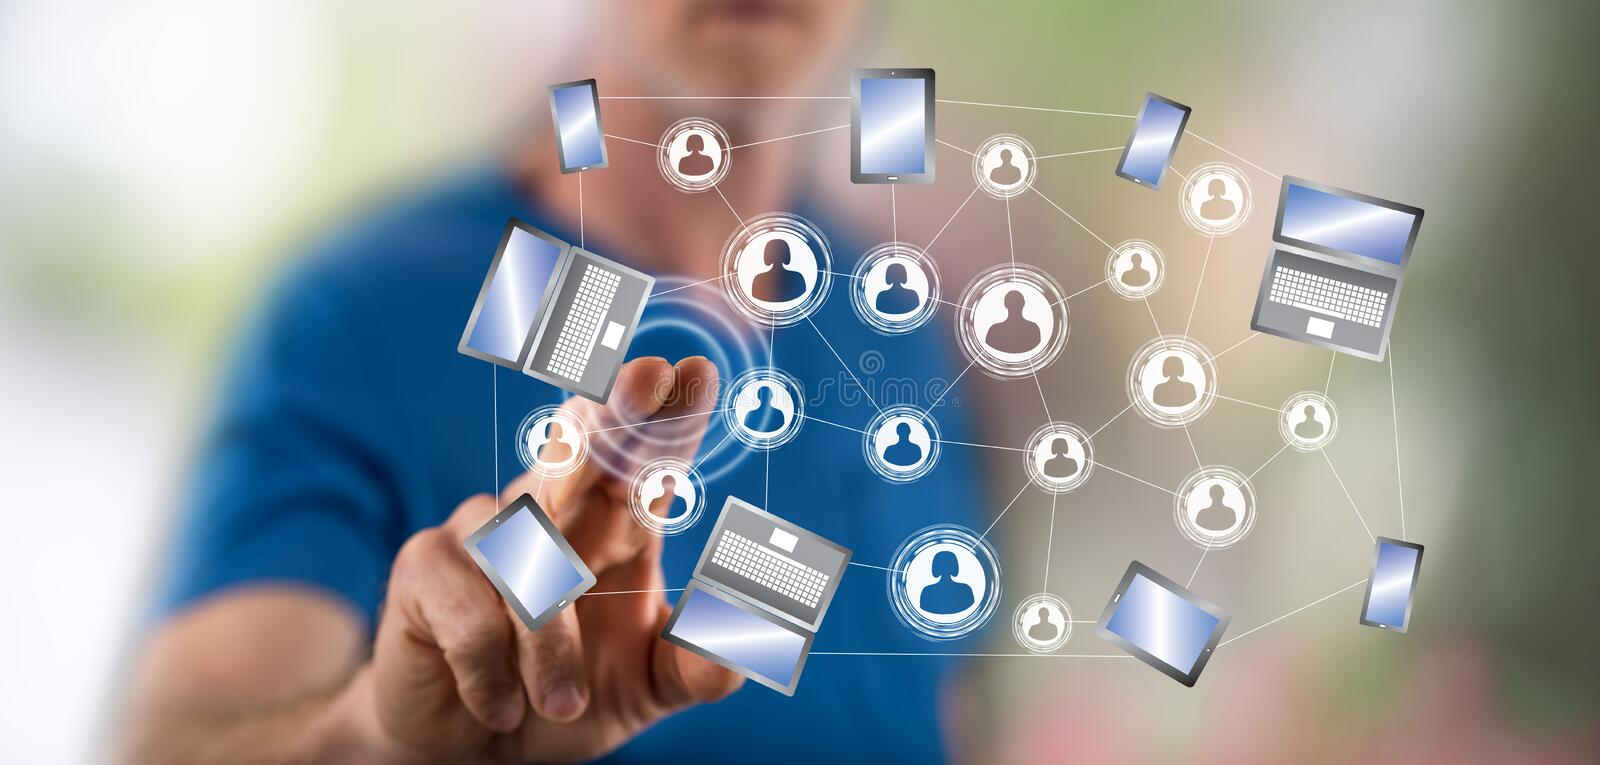 Man touching a social network connection concept stock image